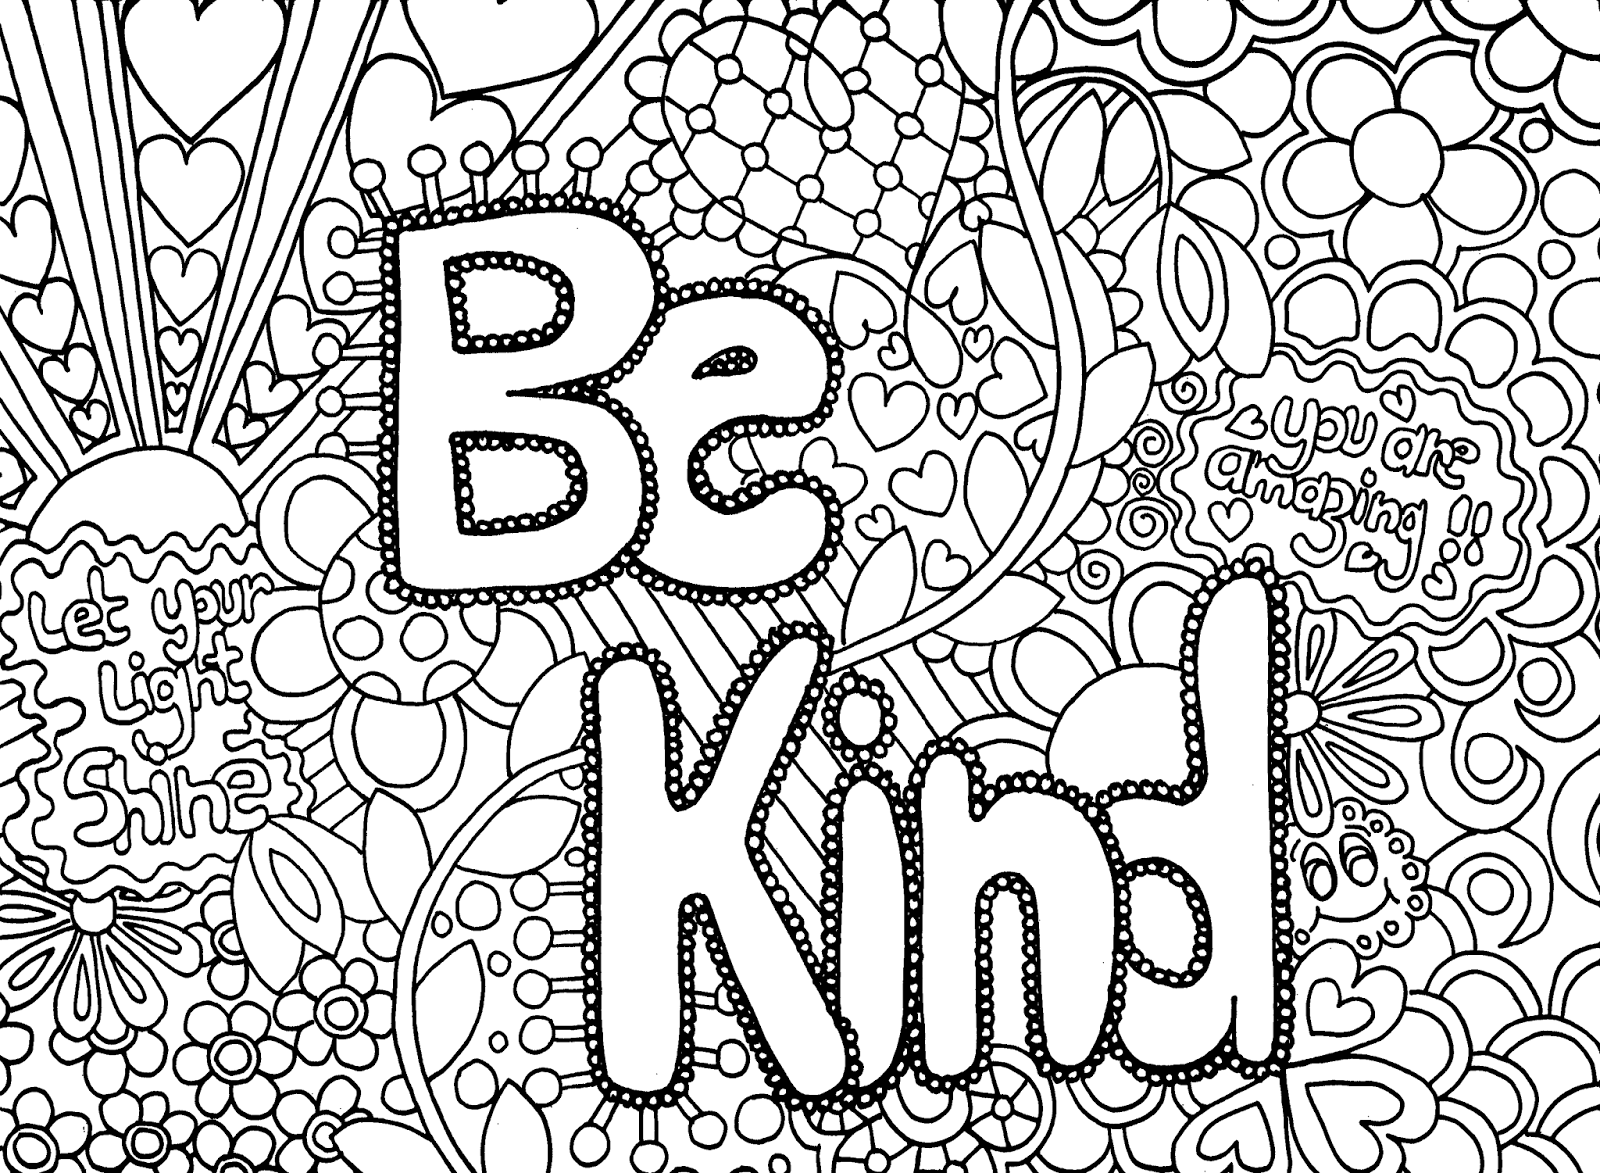 hard coloring pages for adults best coloring pages for kids - Challenging Dragon Coloring Pages